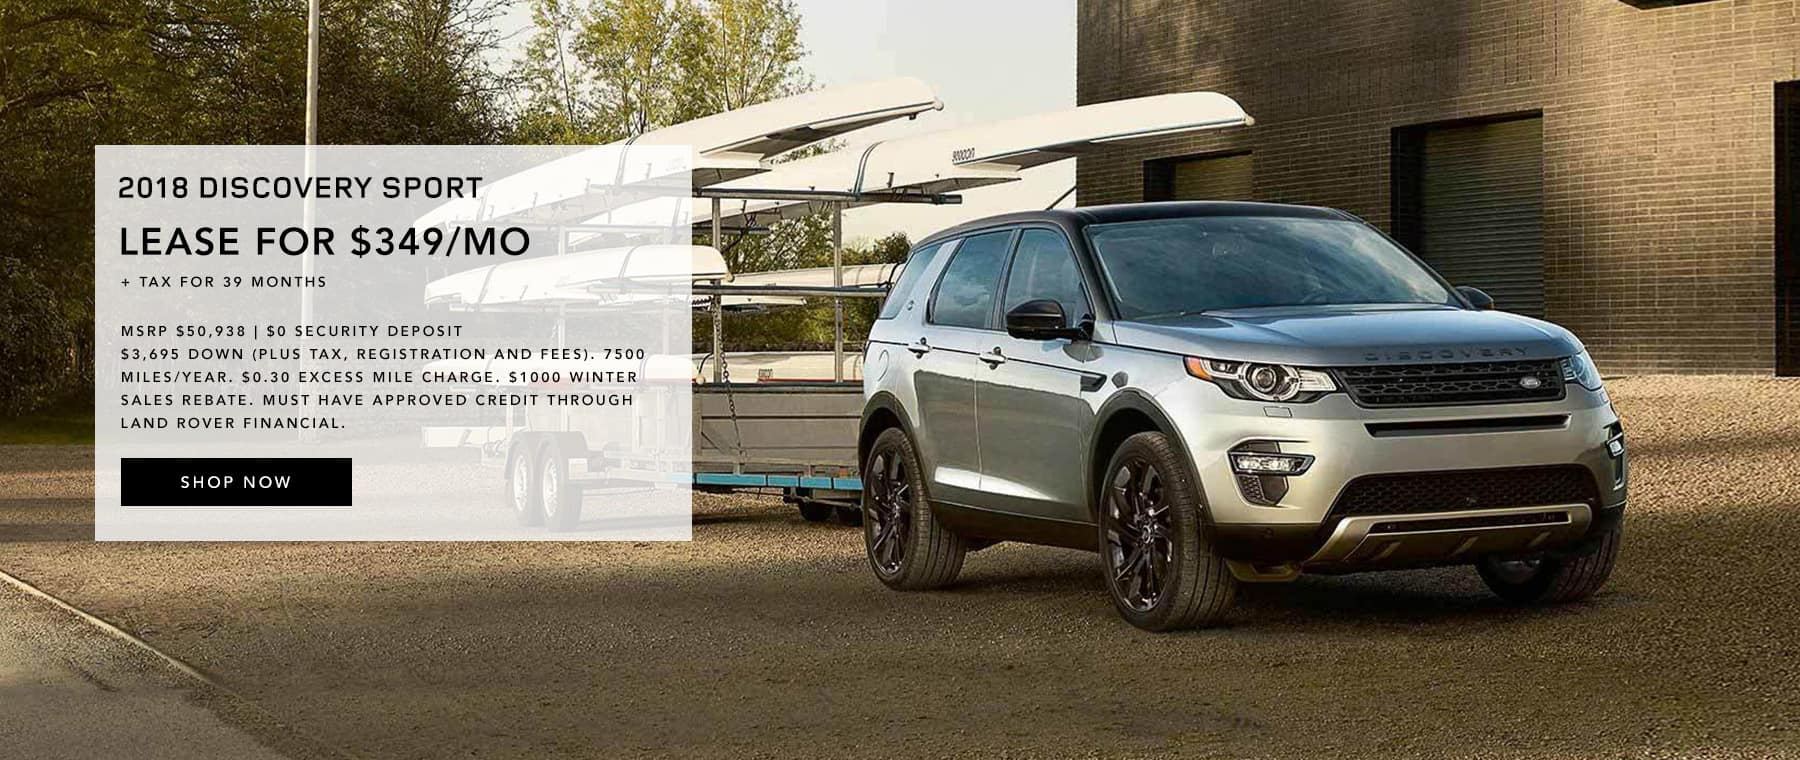 2018 Discovery Sport Lease Offer